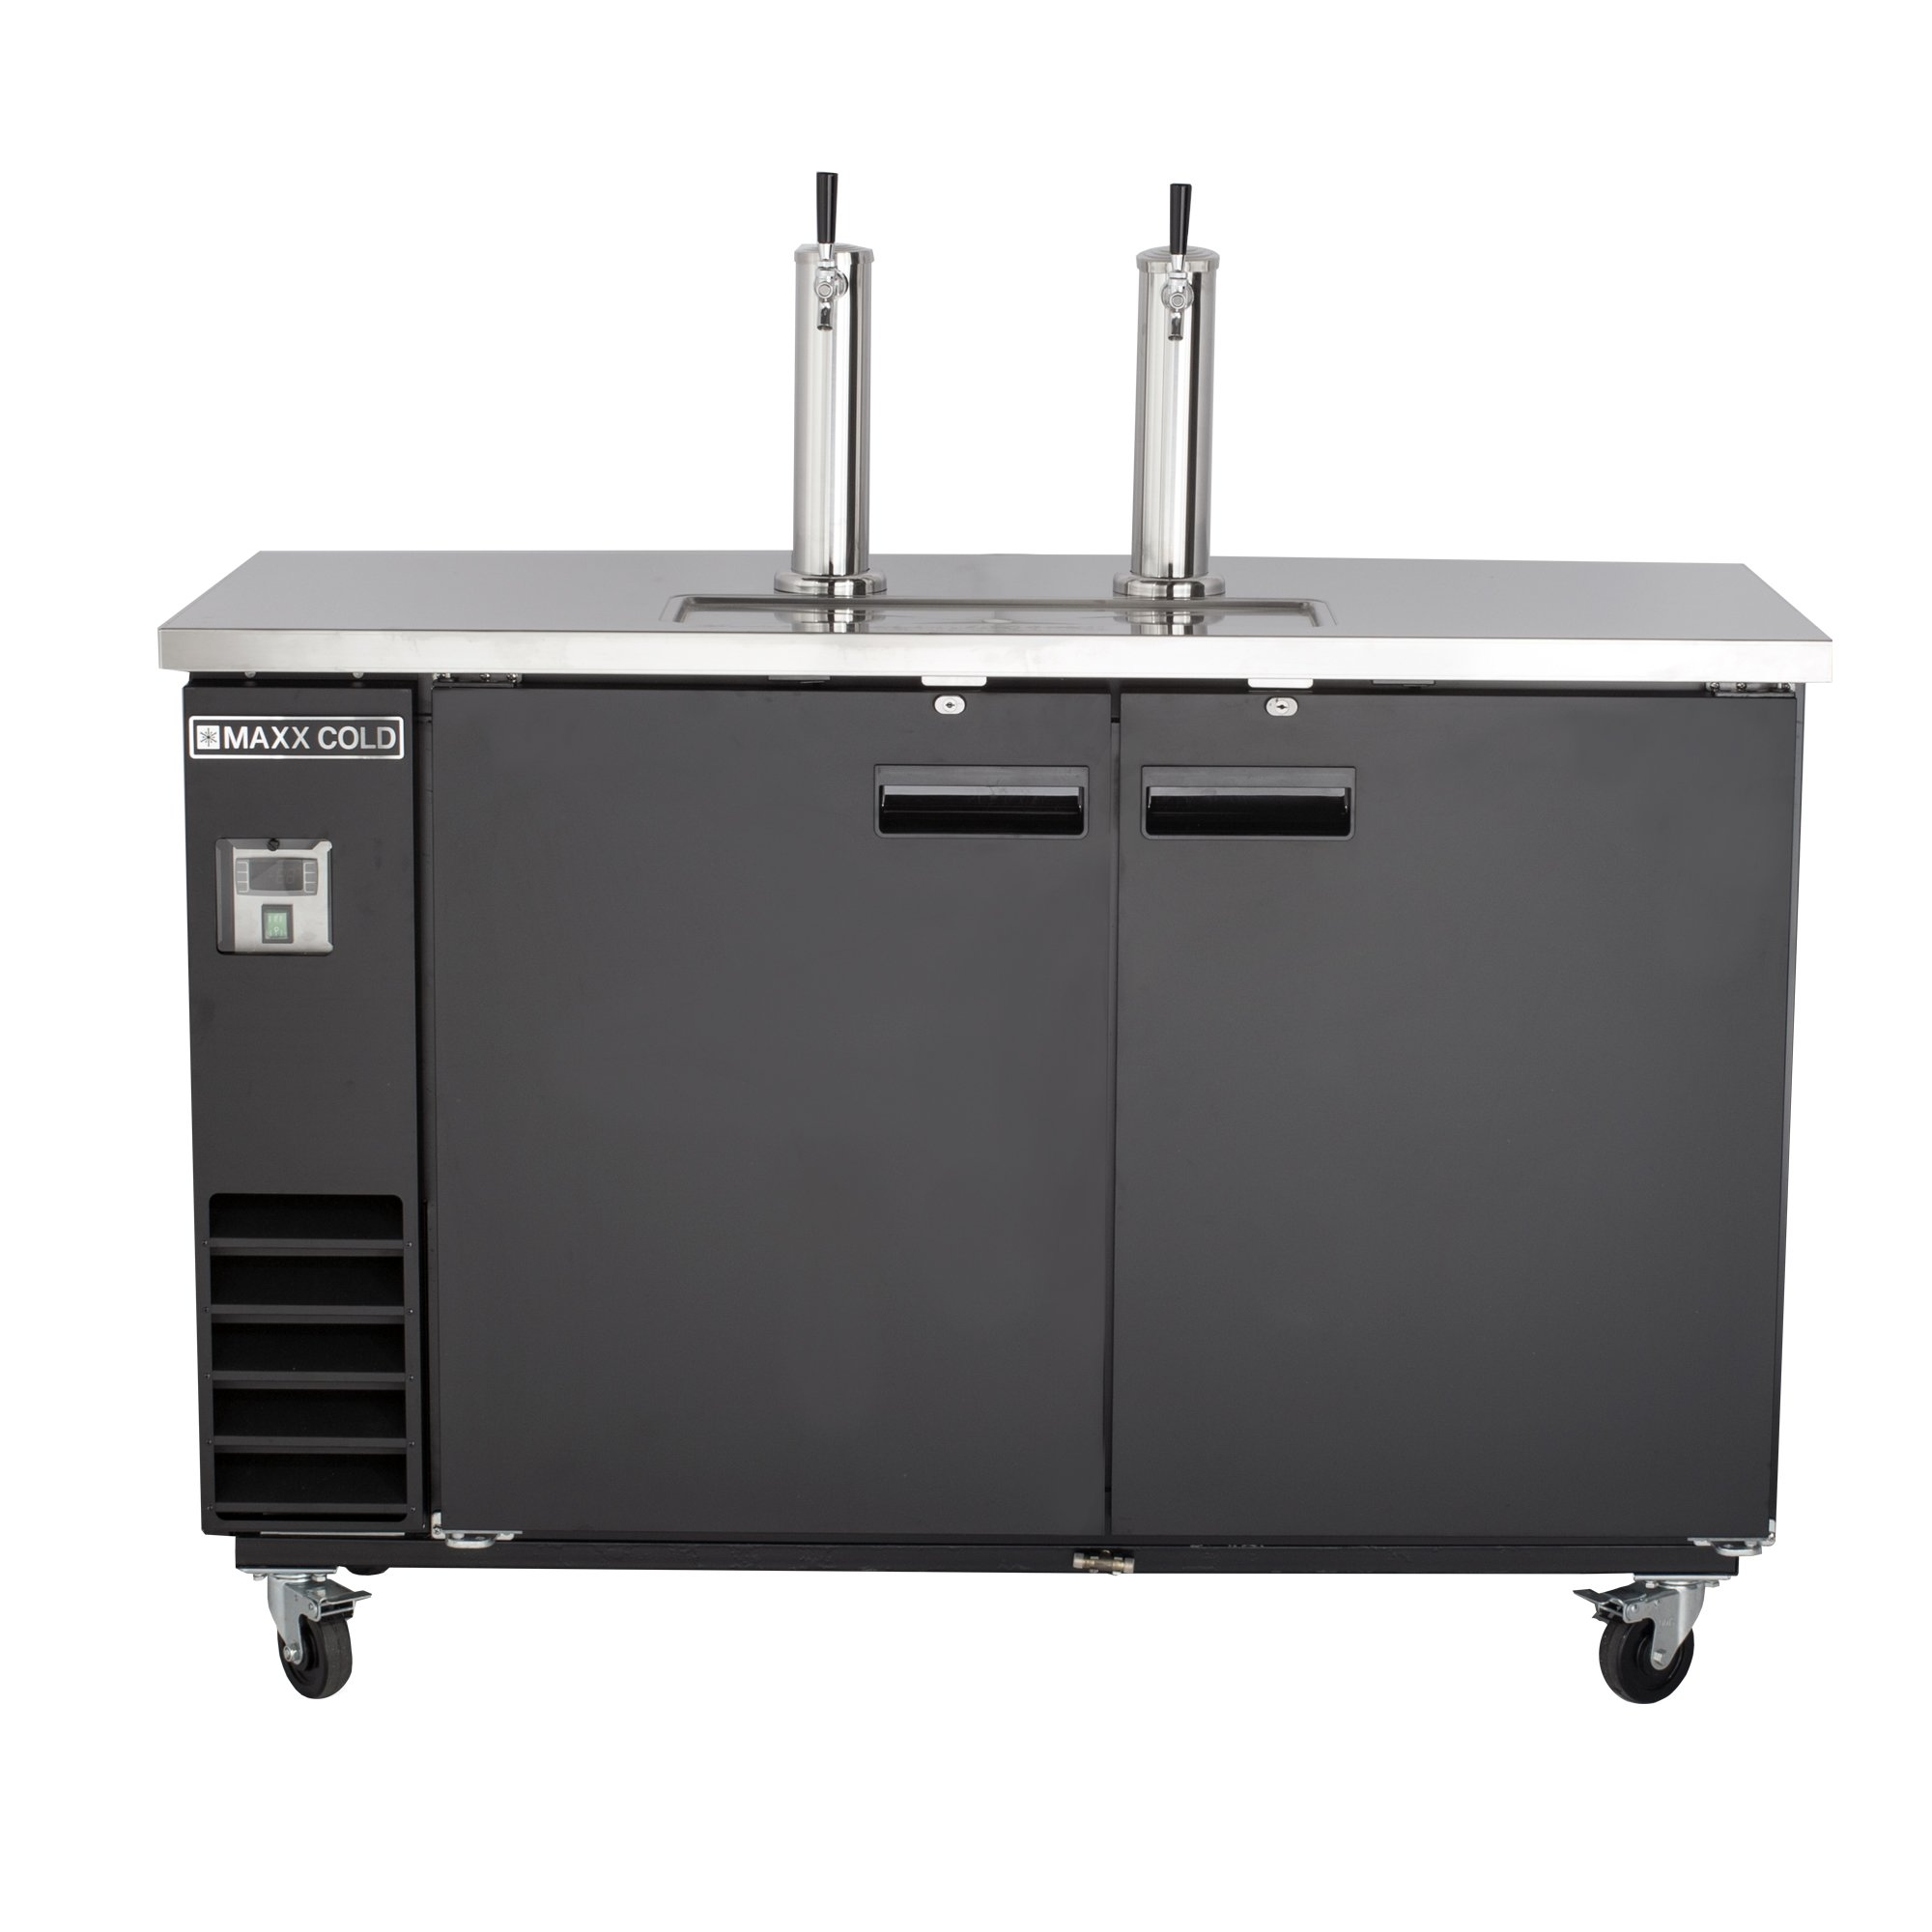 Maxx Cold MXBD60-2B Commercial NSF Bar Direct Draw Kegerator Beer Dispenser Cooler with 2 Towers Taps Holds 2 Half 1/2 Size Keg, 61.1 Inch Wide 14.2 Cubic Feet , Black